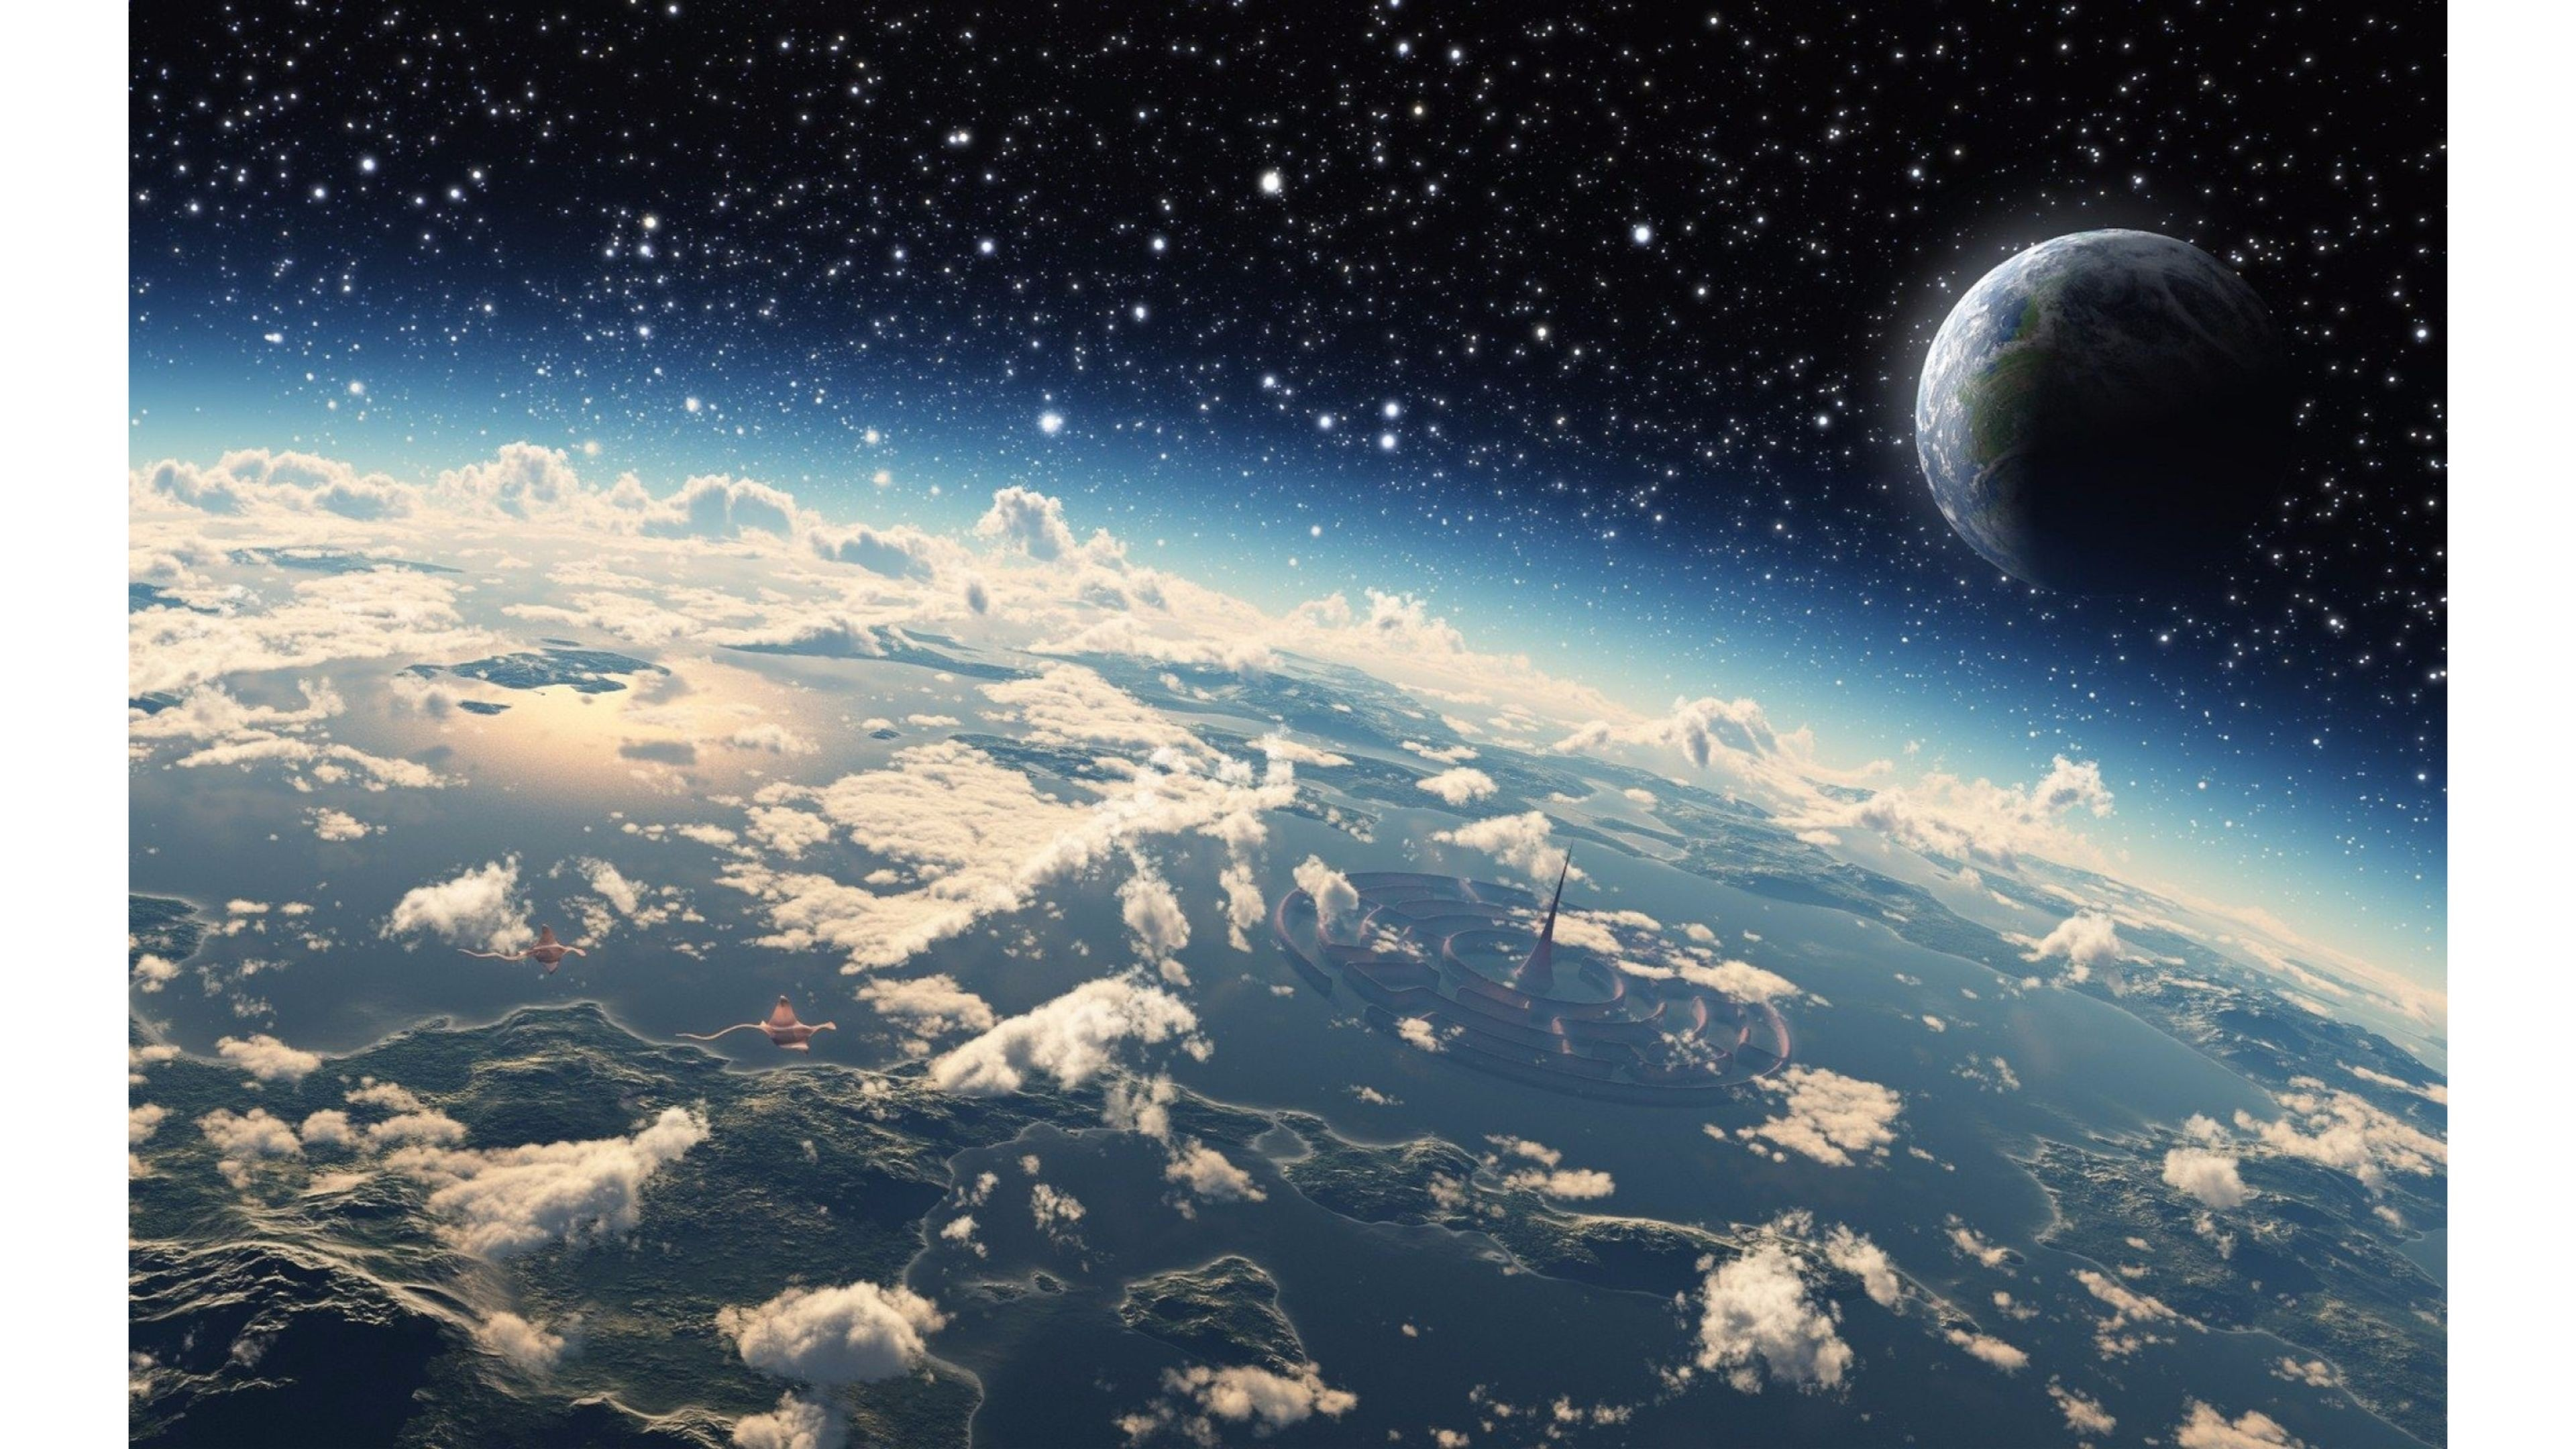 4k Resolution Space 4k 3840x2160 Download Hd Wallpaper Wallpapertip